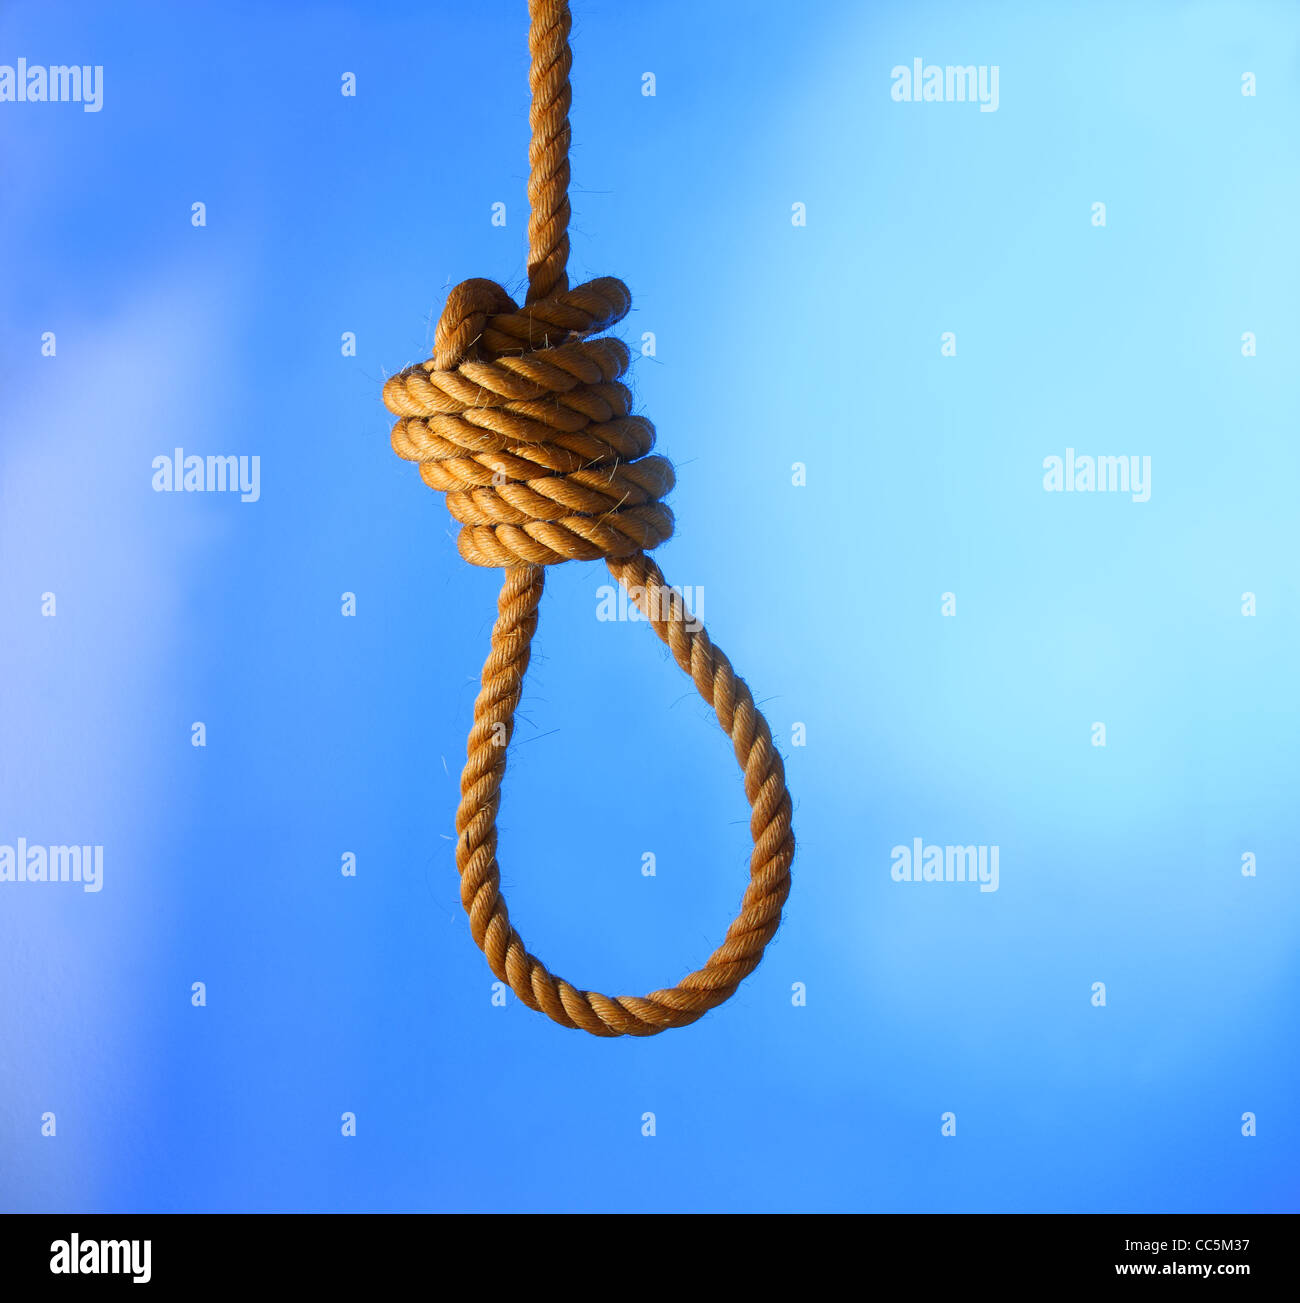 A rope tied into a noose - Stock Image